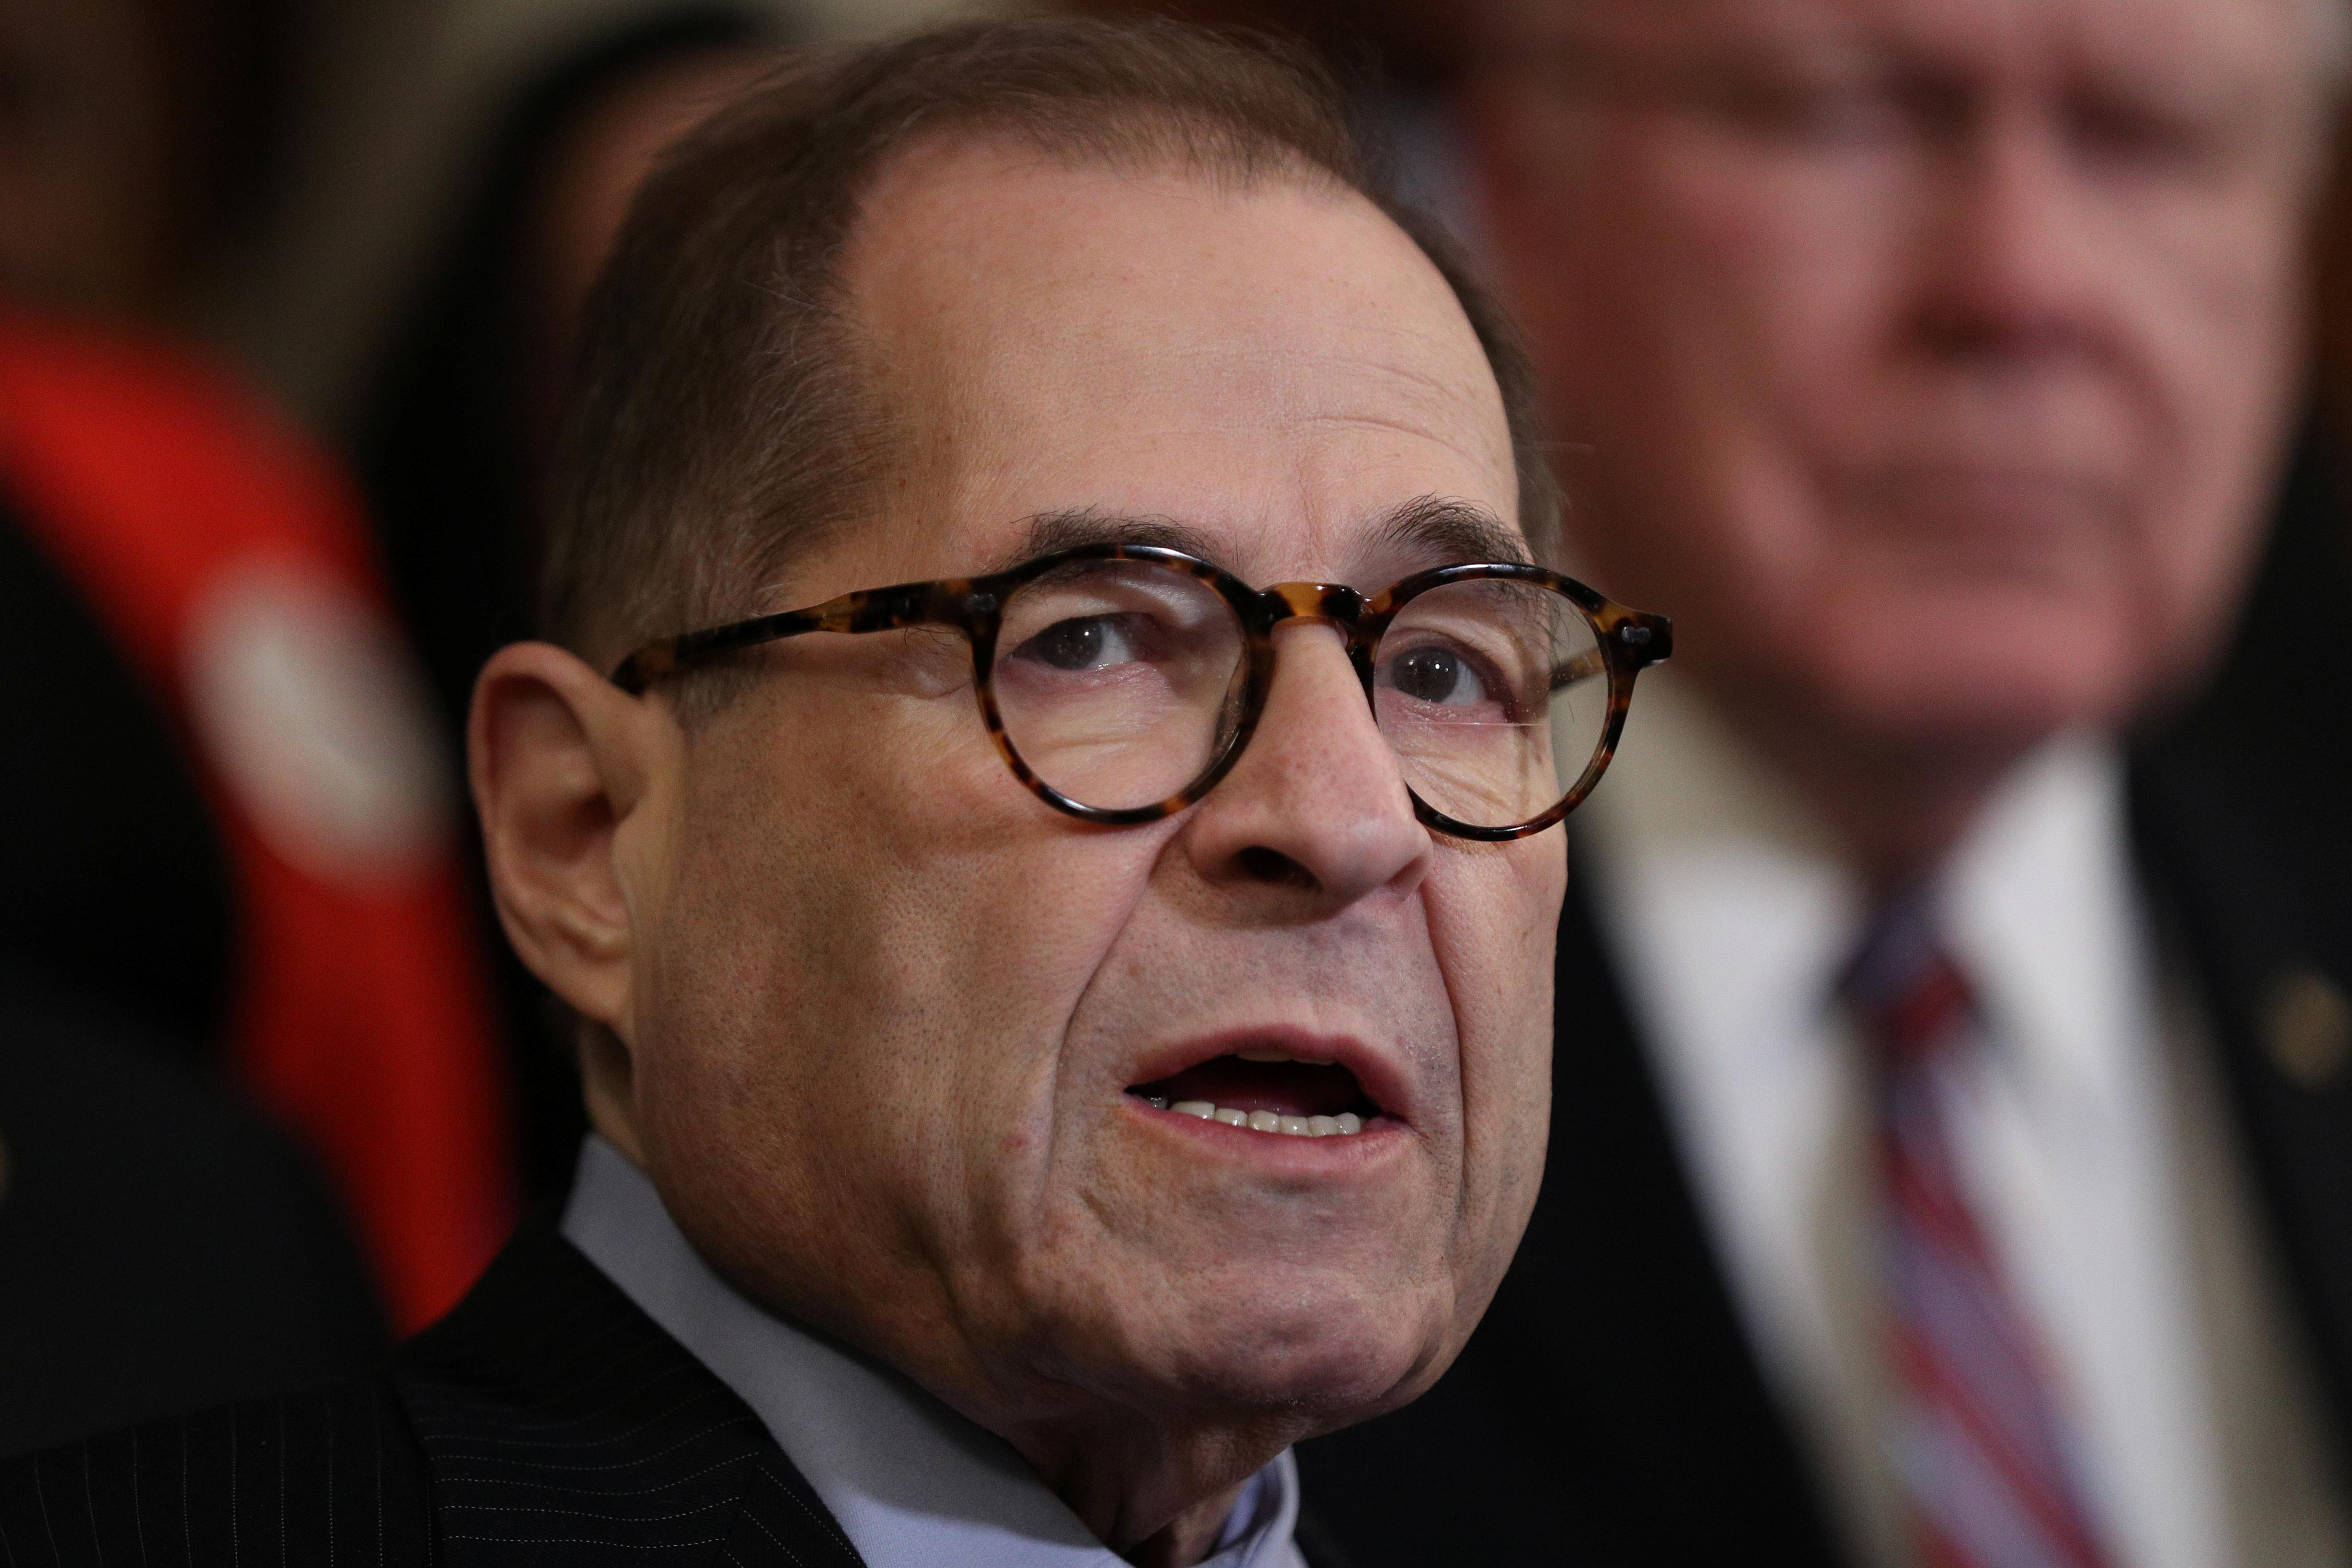 Democrats zoom in on Trump impeachment charges this week